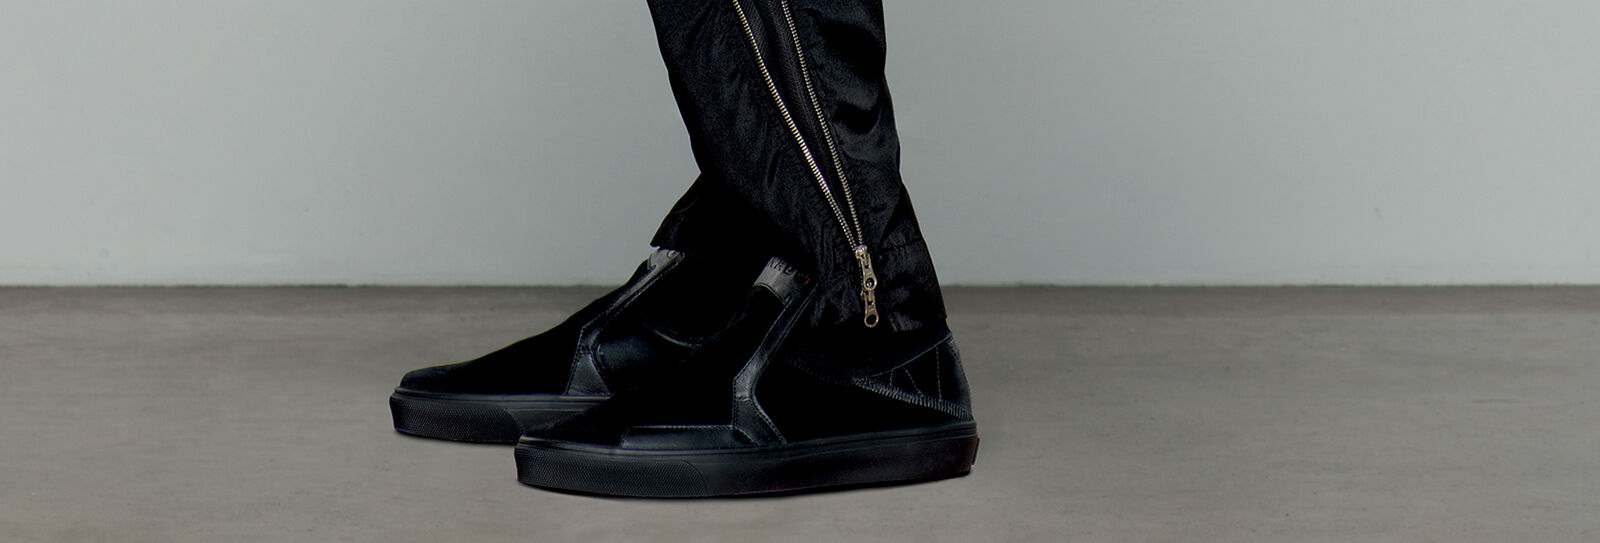 Close up shot of model wearing black pants with golden two ways zipper and a pair of black lace less shoes.